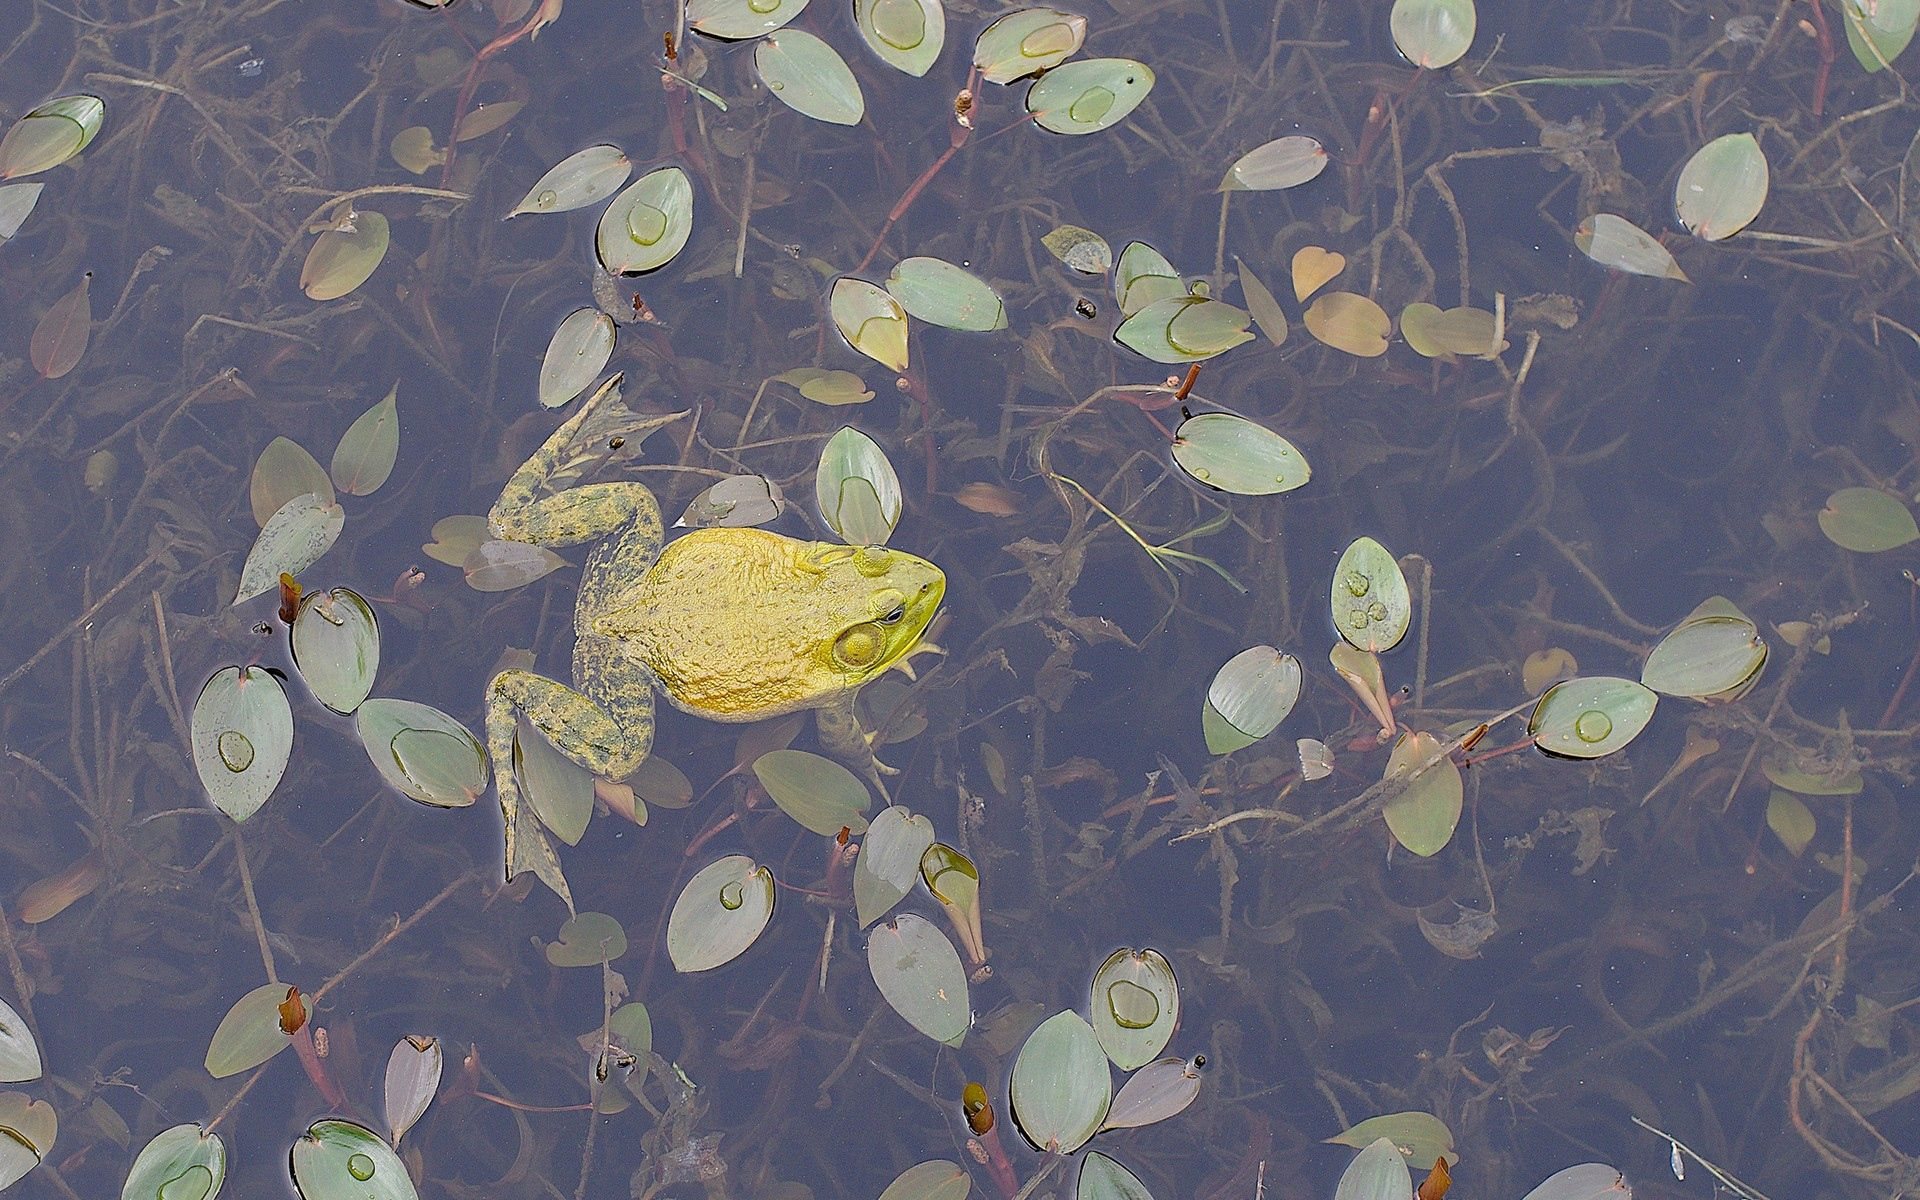 153345 download wallpaper Animals, Frog, Leaves, To Swim, Swim screensavers and pictures for free